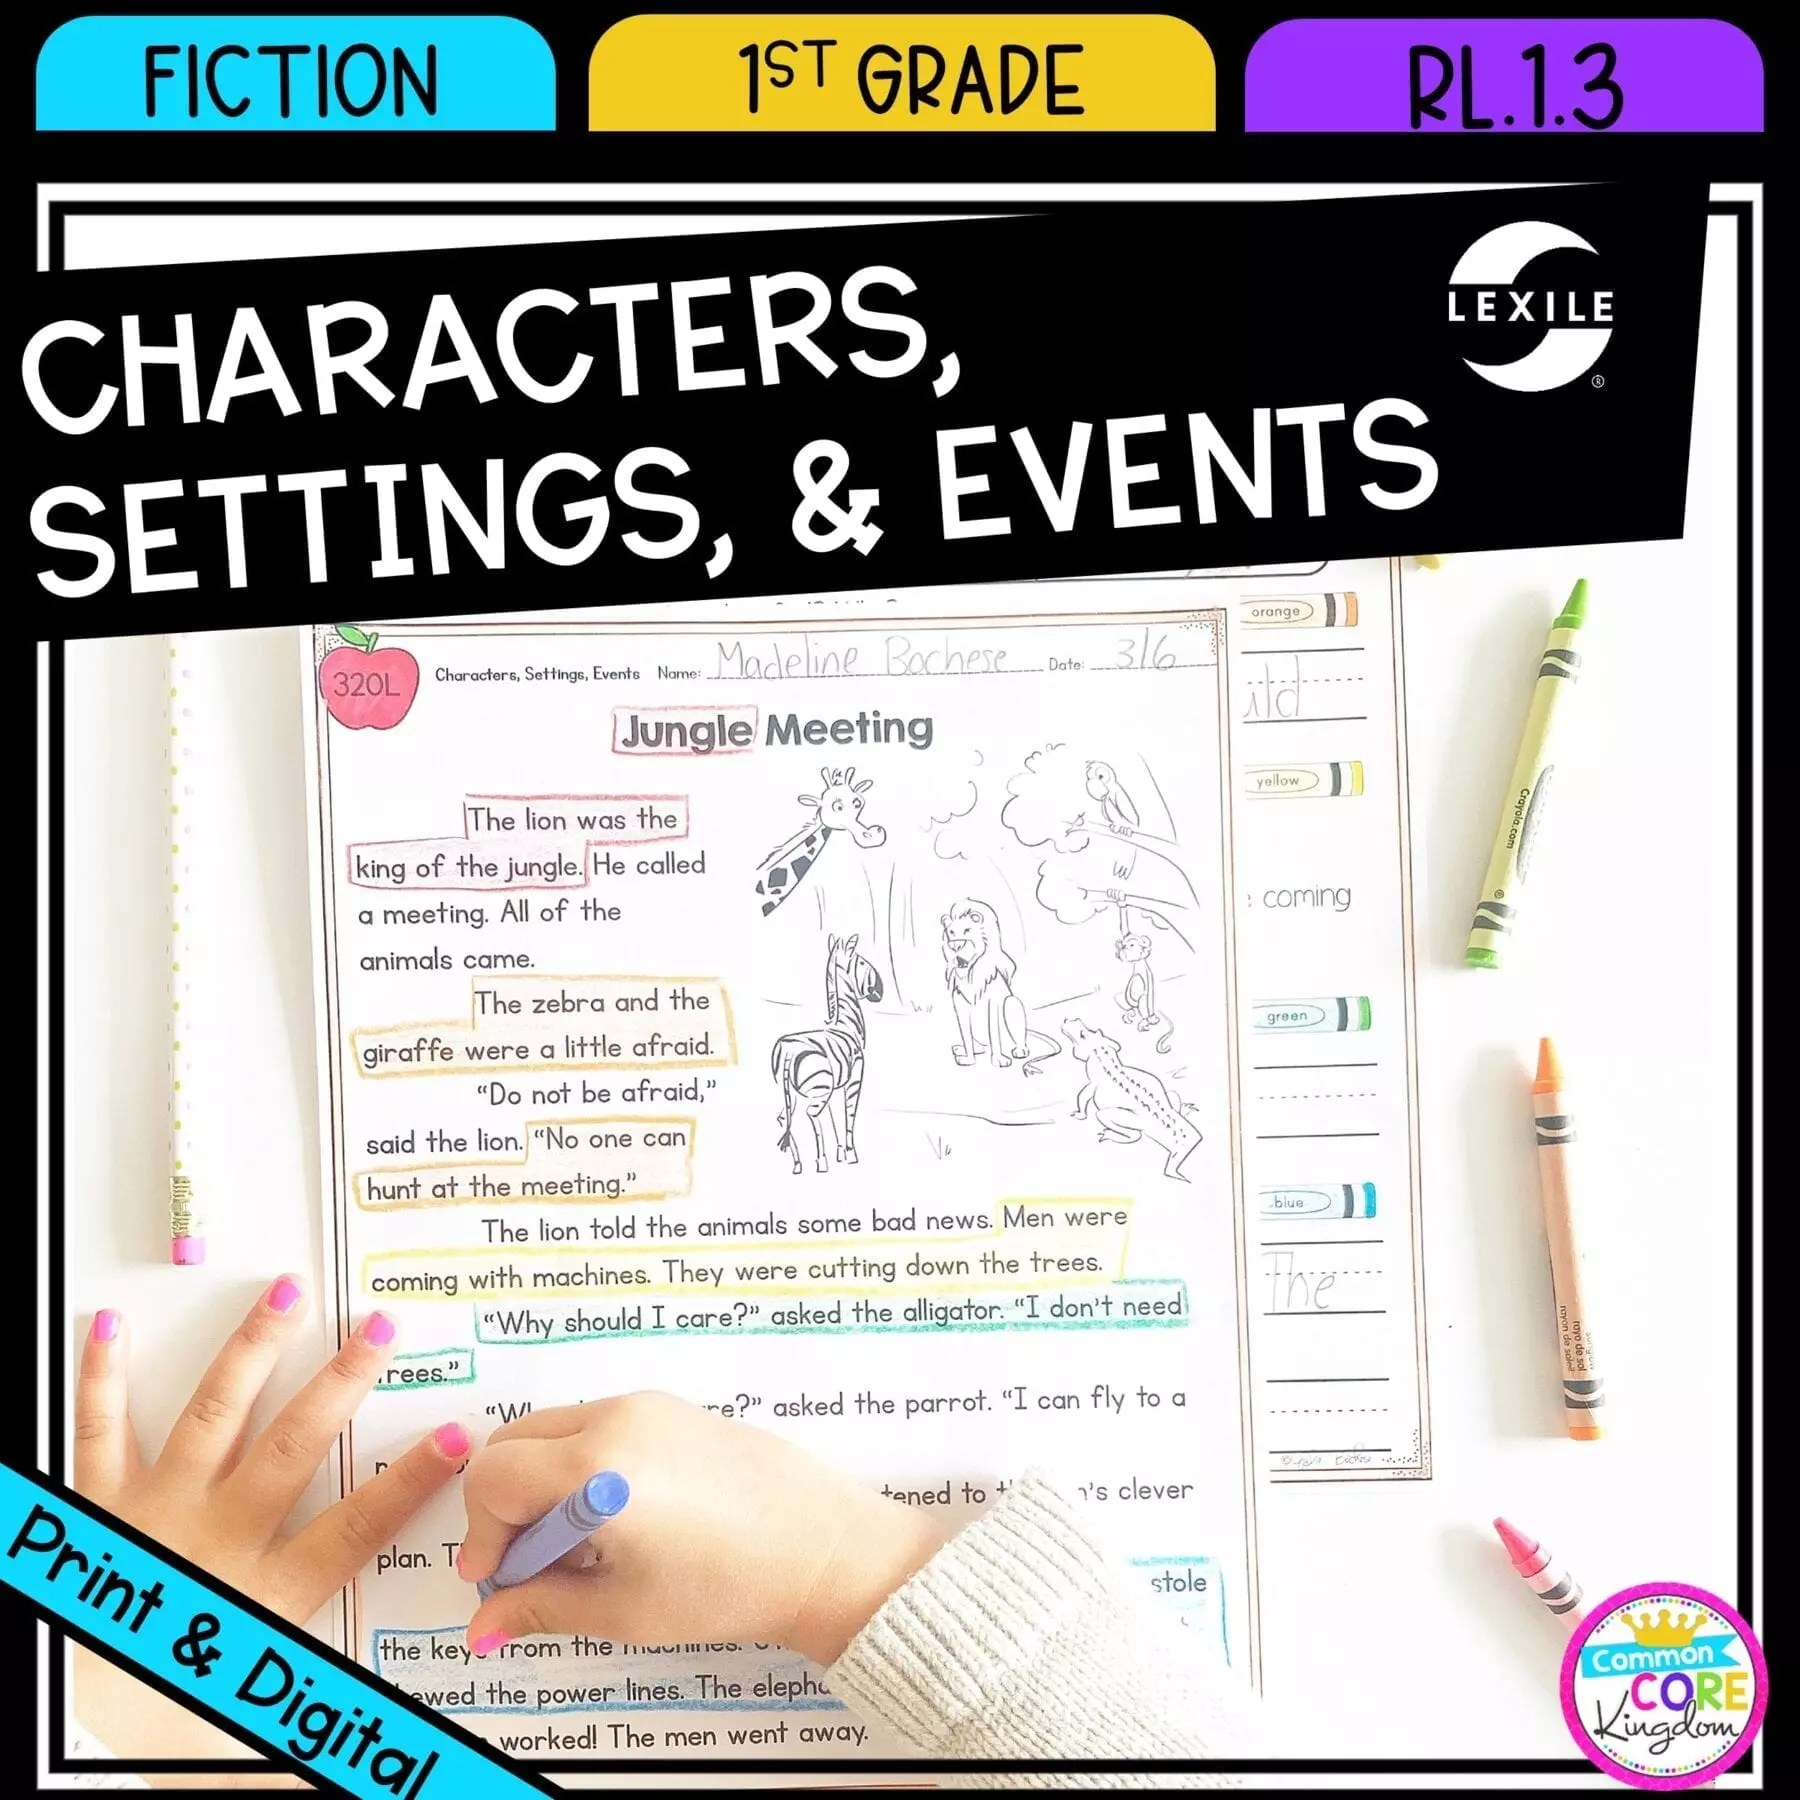 hight resolution of Characters Settings and Events - 1st Grade RL.1.3 Printable \u0026 Digital  Google Slides Distance Learning Pack   Common Core Kingdom